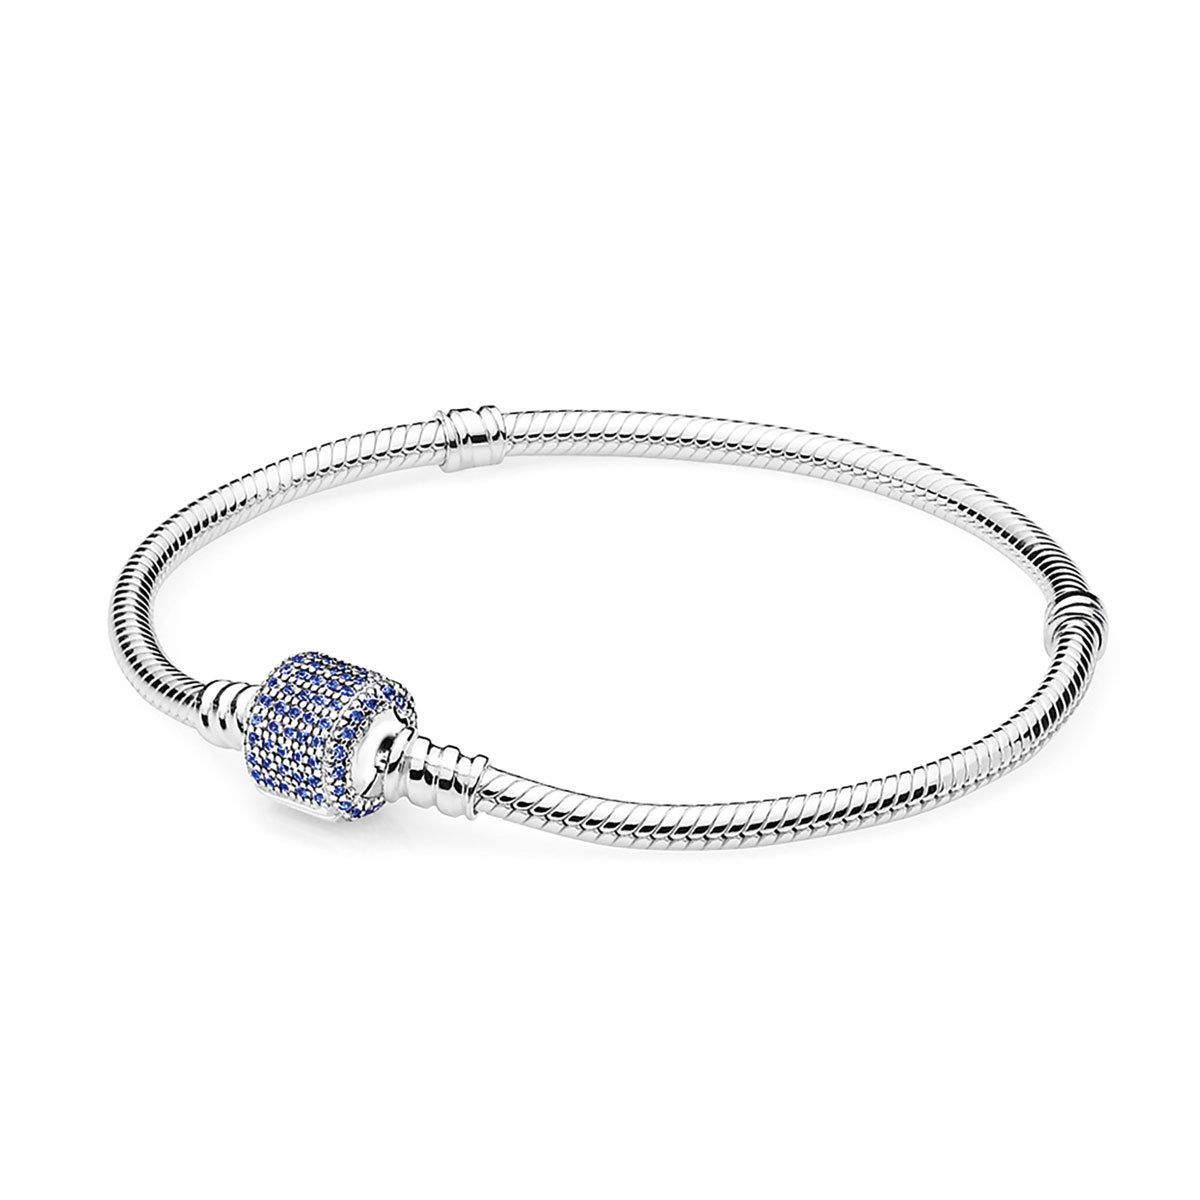 925 Sterling Silver Signature Clasp with Royal-Blue Crystal Snake Chain Bracelet